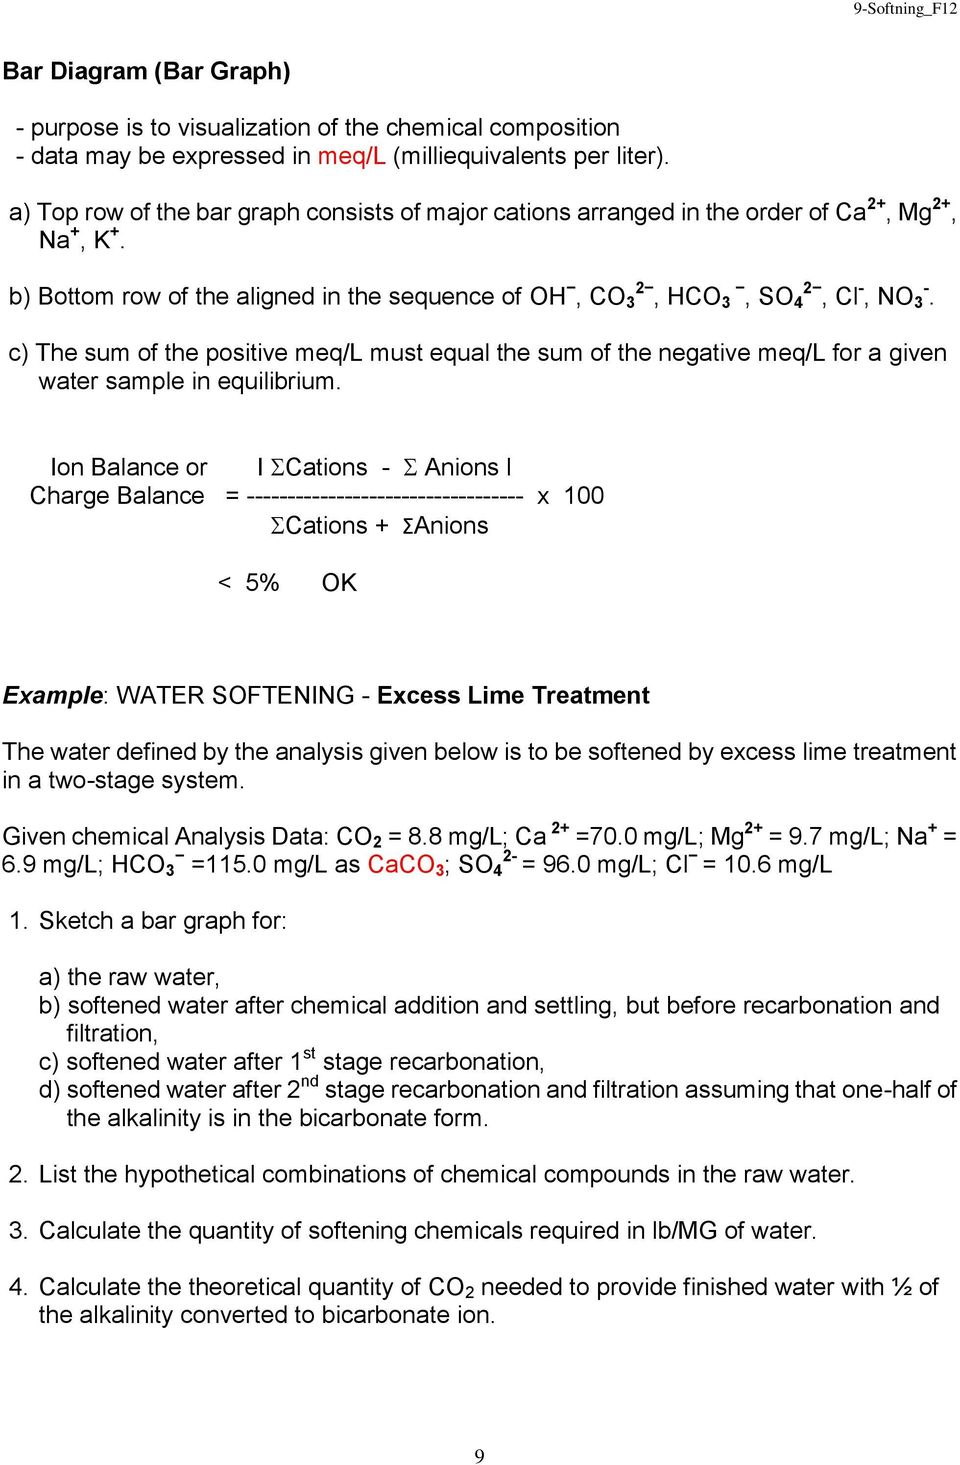 c) The sum of the positive meq/l must equal the sum of the negative meq/l for a given water sample in equilibrium.